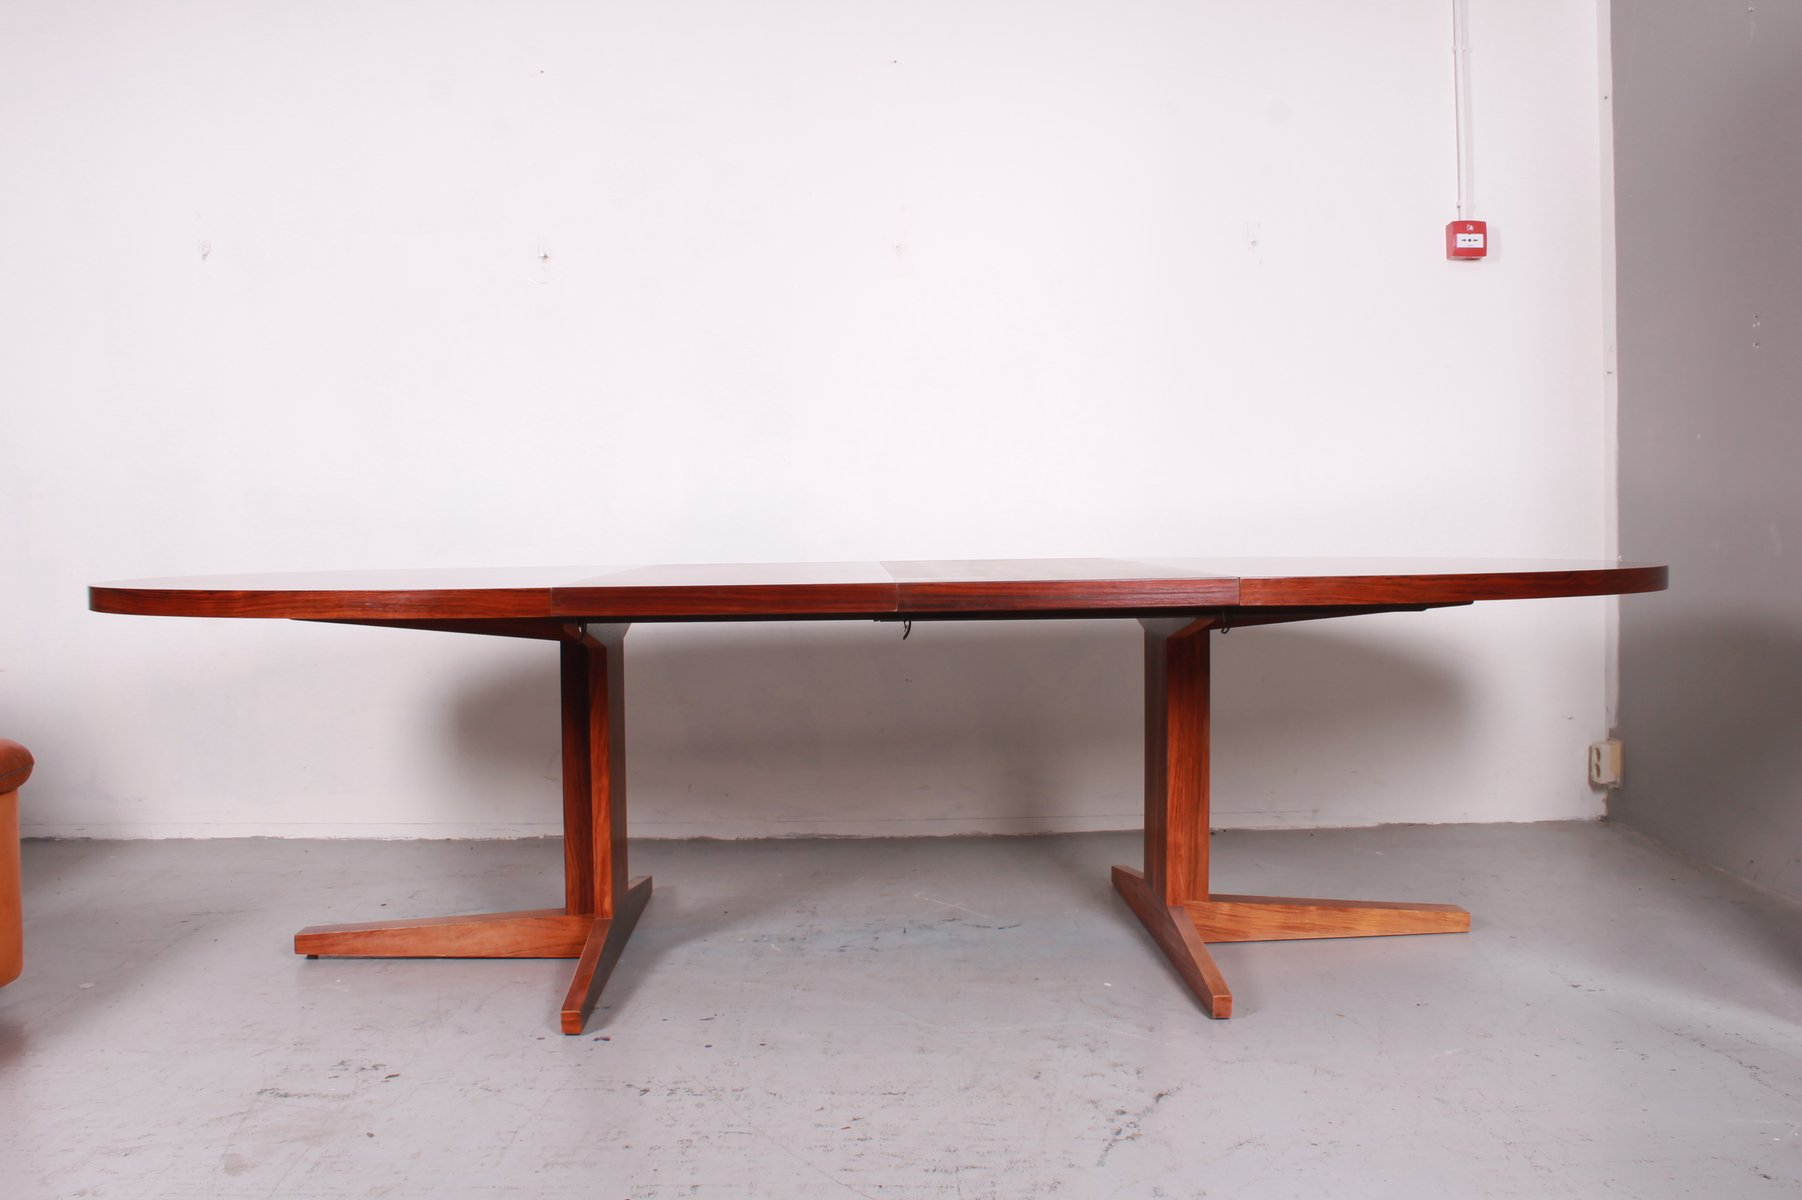 Vintage extensible dining table from dyrlund for sale at for Table extensible axiome